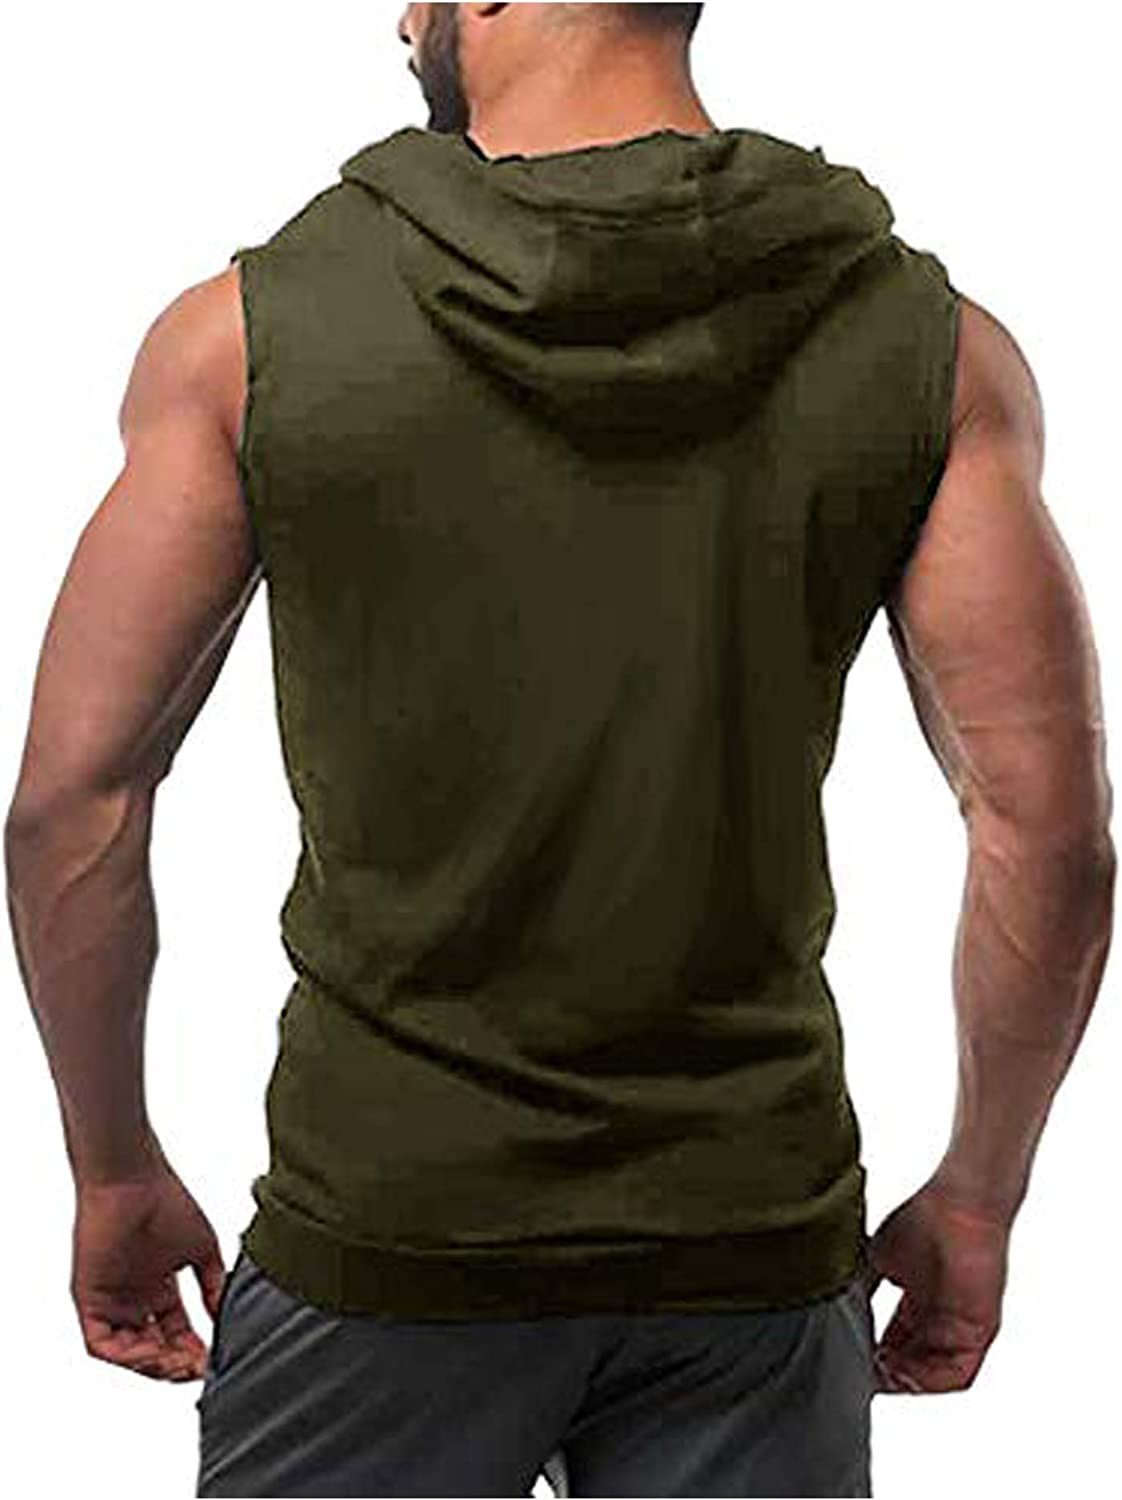 Coofandy Mens Tank Tops Shirts Workout Sports Hooded Vest Sleeveless Muscle Bodybuilding Gym Hoodie with Pocket Army Green, XXL